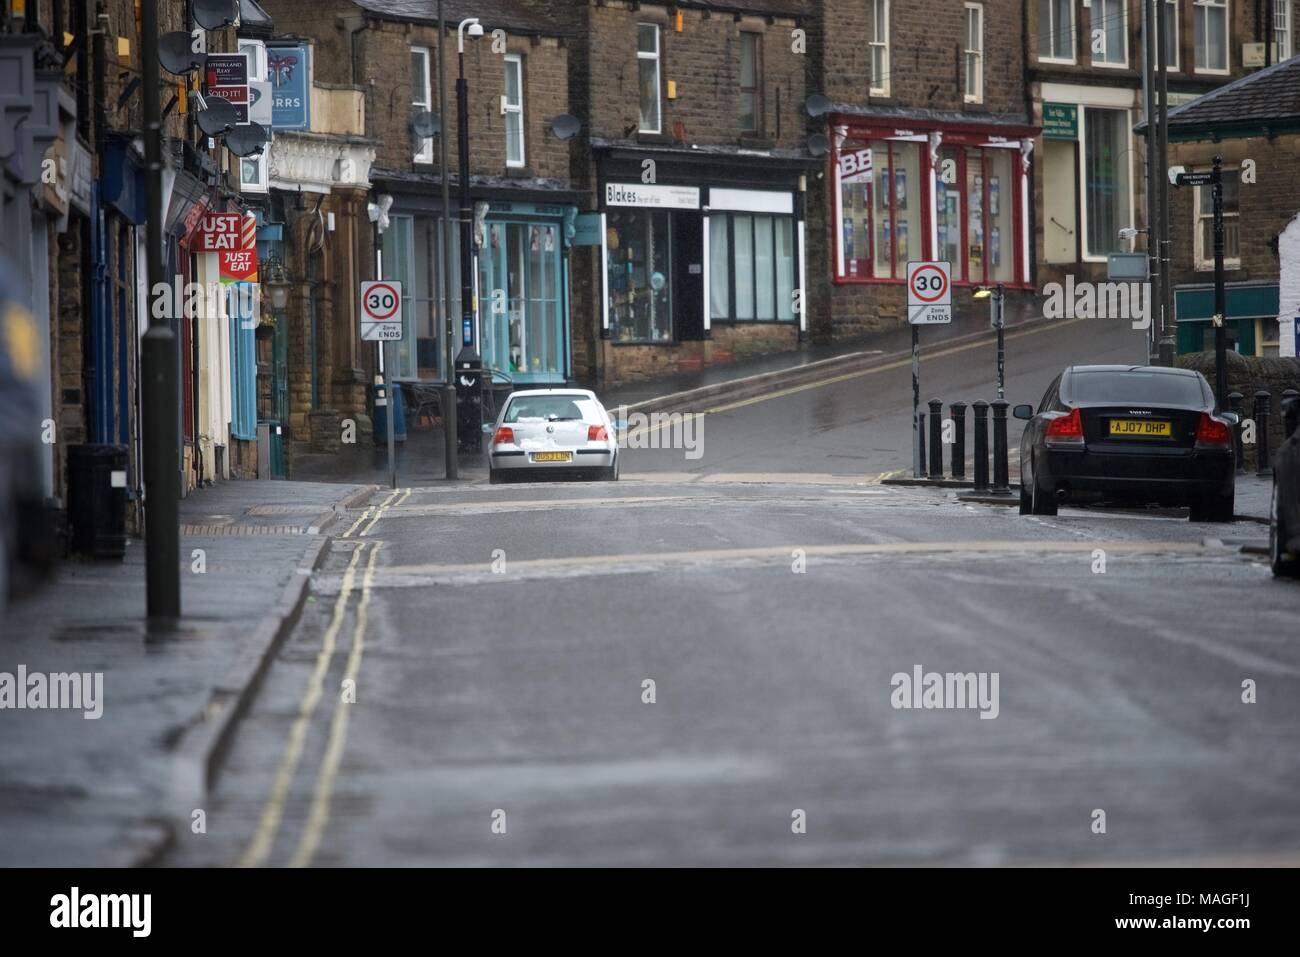 New Mills. High Peak. Derbyshire. 2nd April 2018. UK Weather: A wet and deserted  main street in New Mills on Easter Monday morning. Credit: John Fryer/Alamy Live News - Stock Image